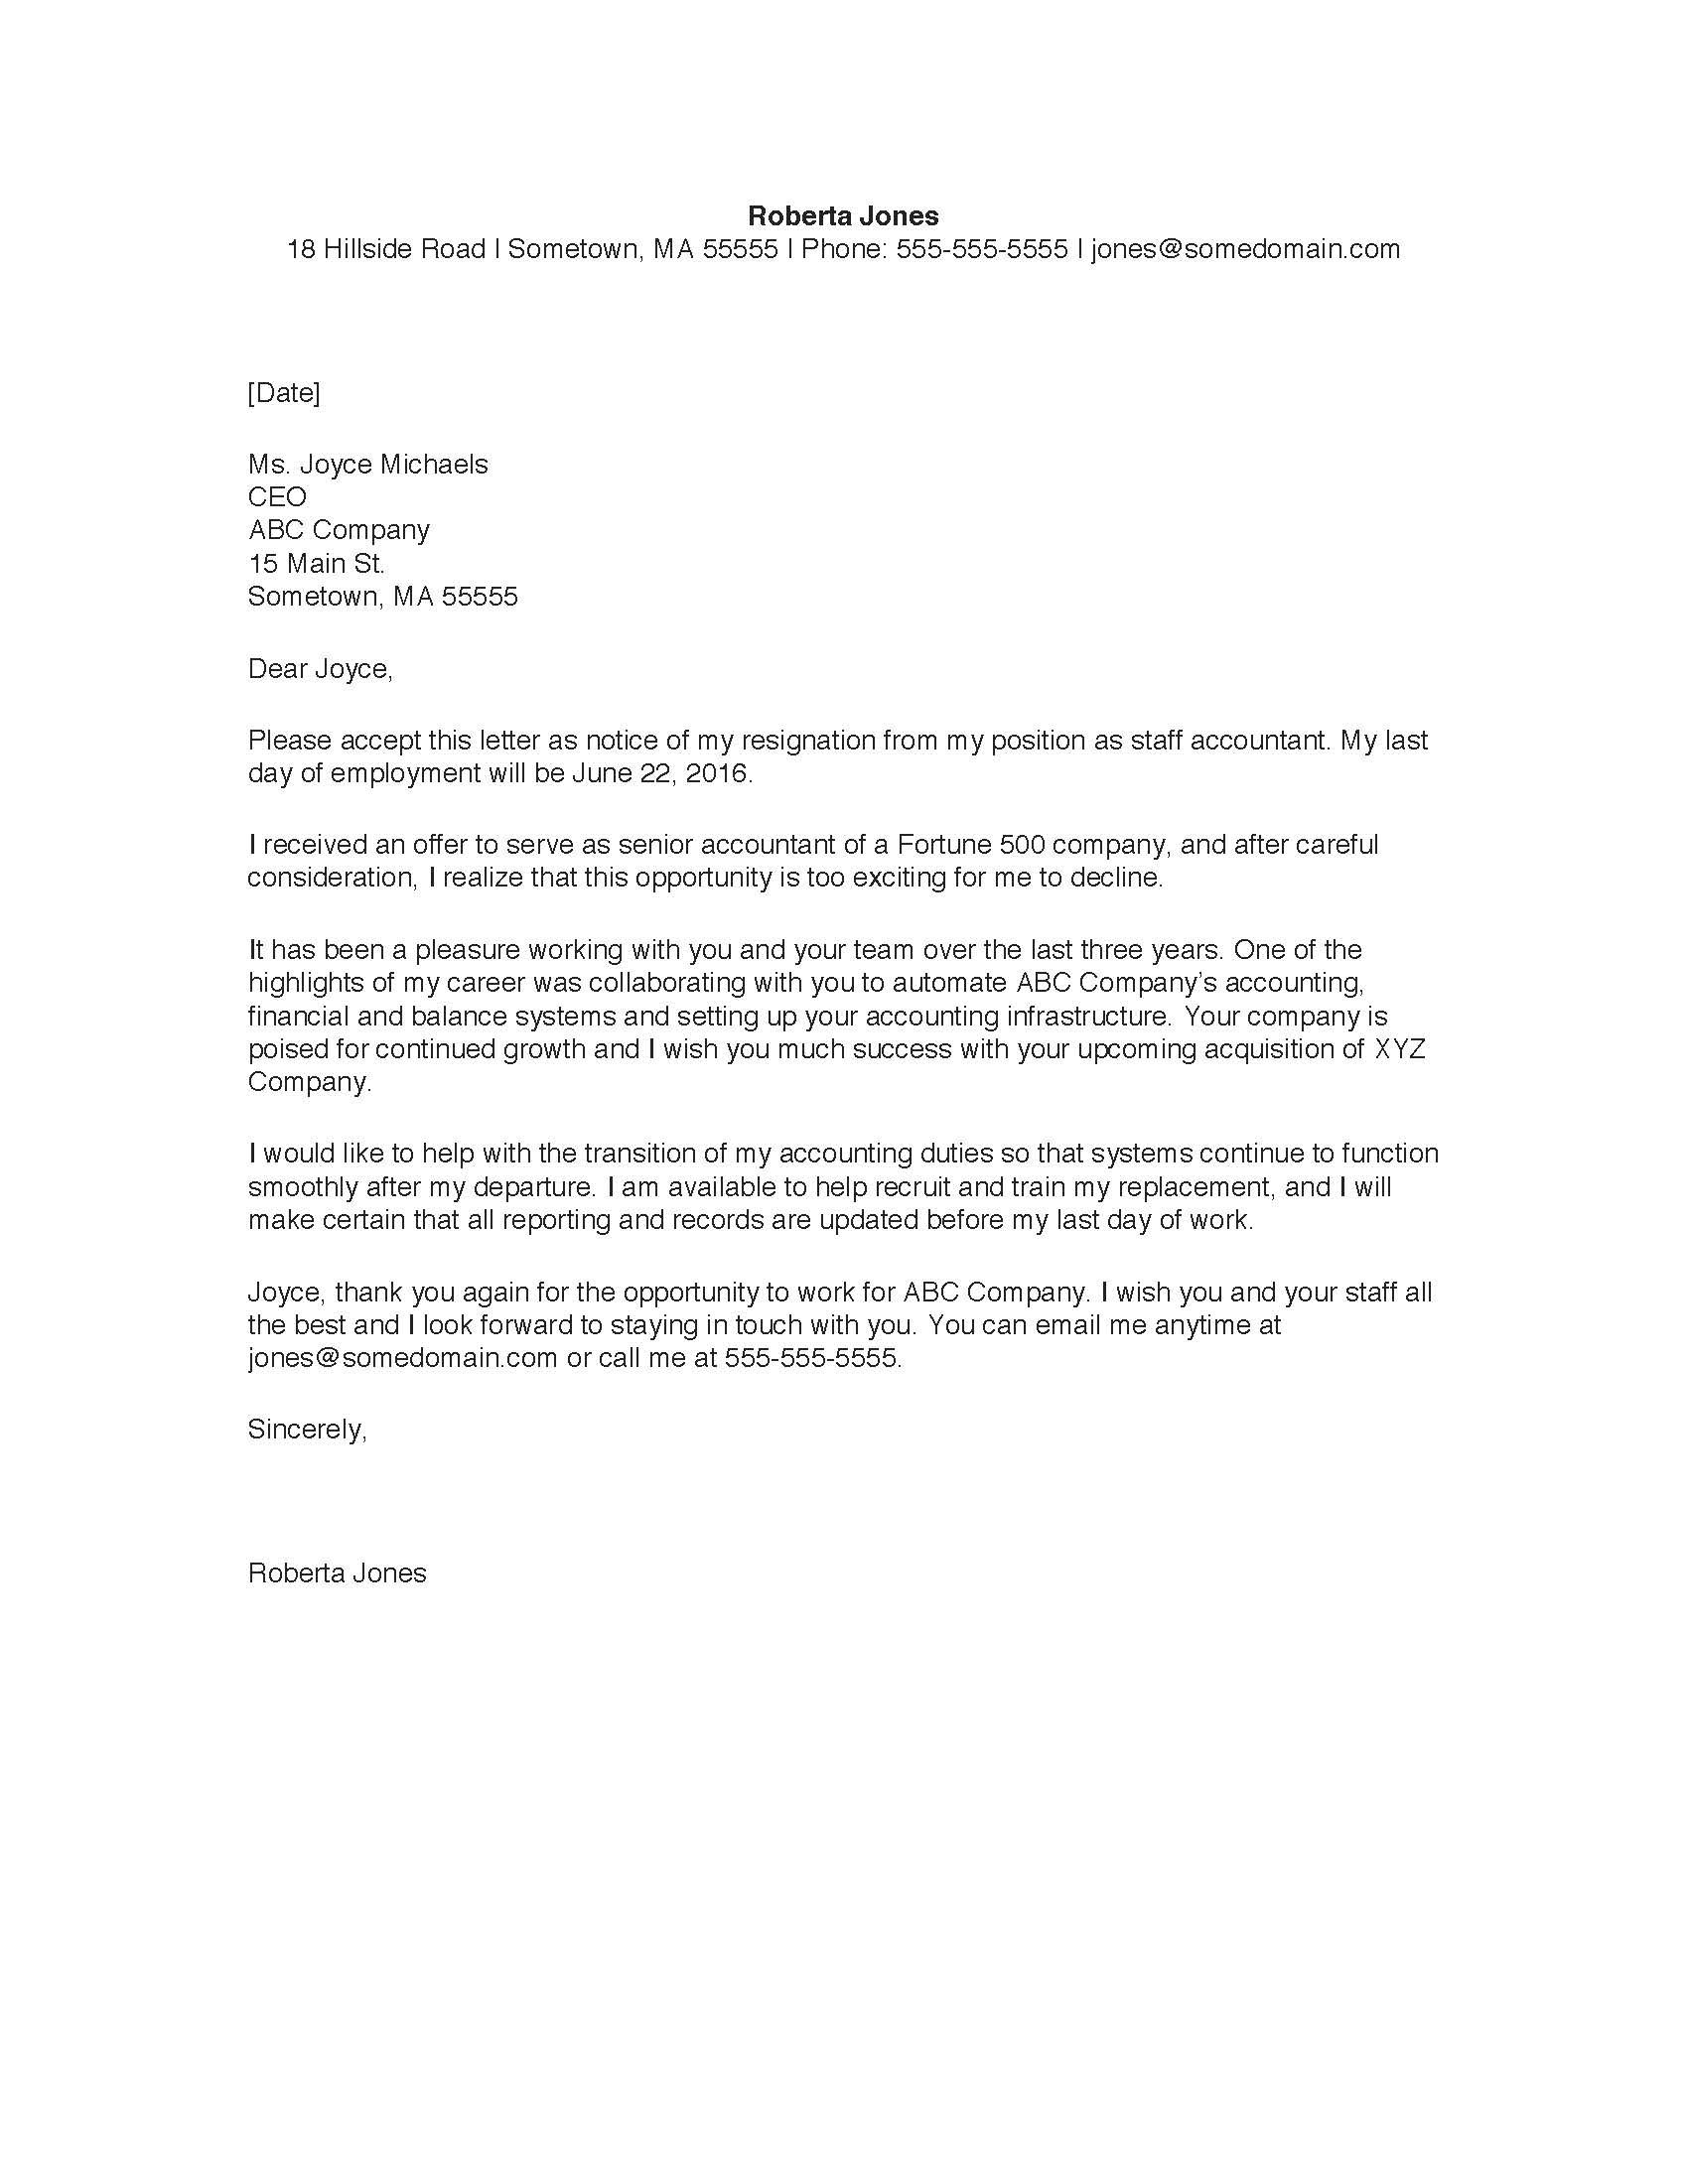 Cpa Letter for Self Employed Template - Sample Resignation Letter